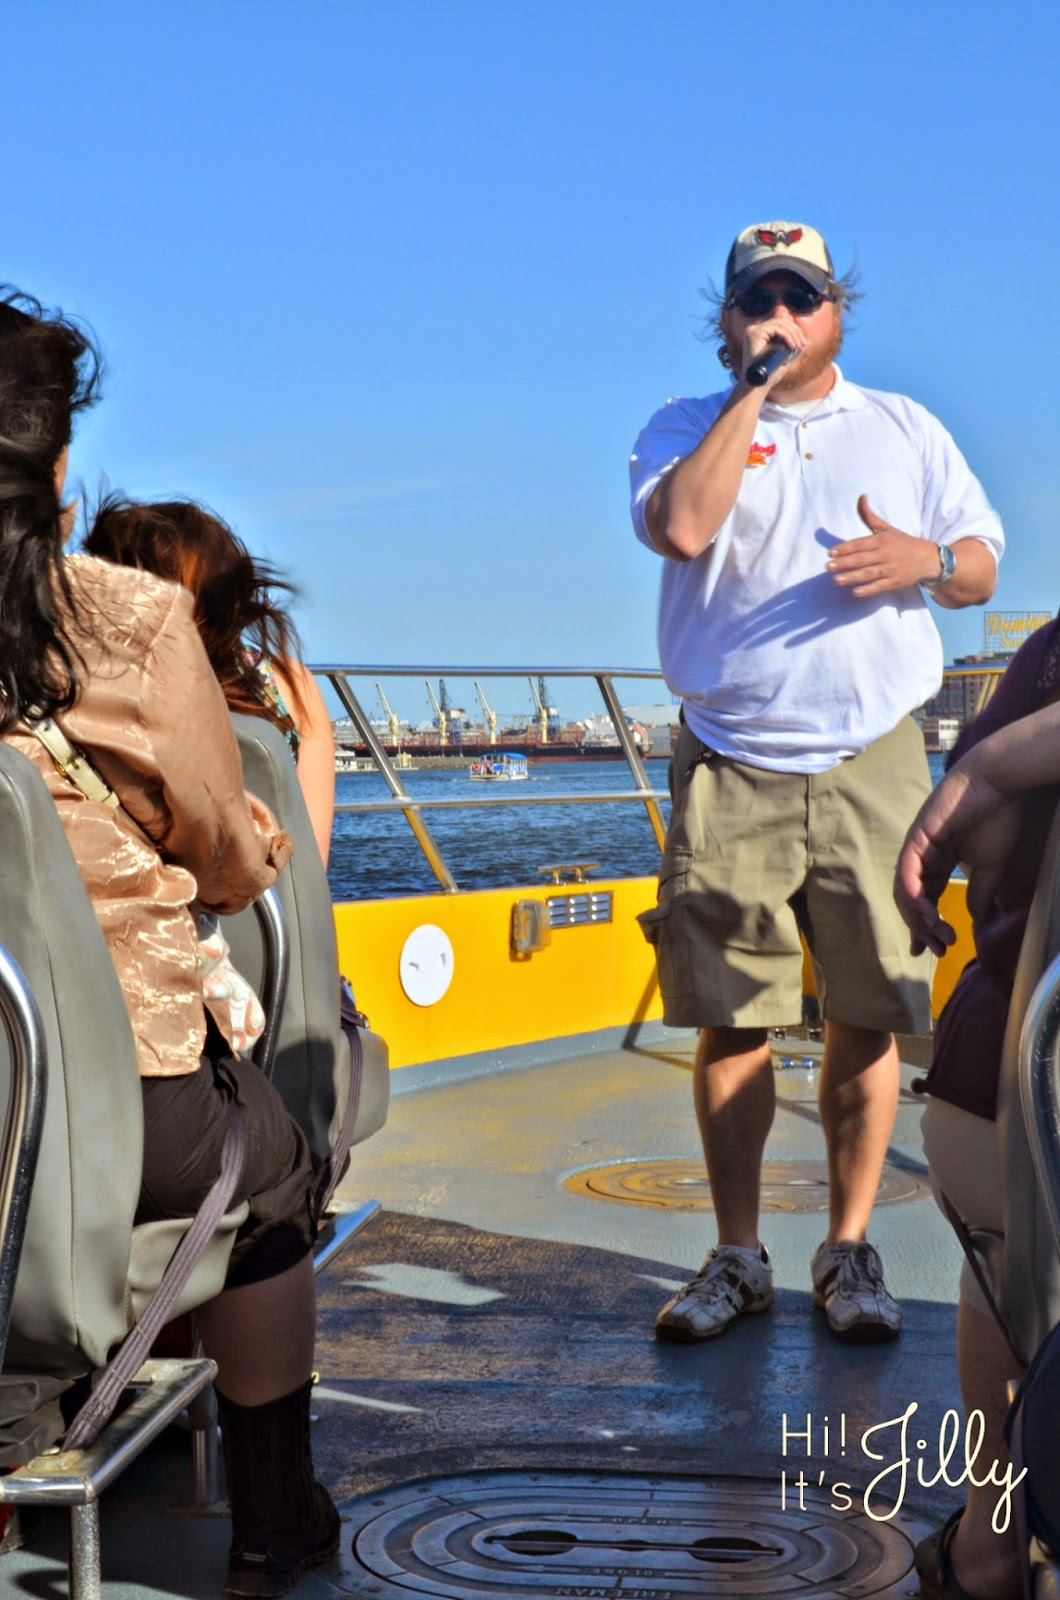 A SeaDog Cruise is a perfect fun family activity! #vacation #baltimore #cruise #innerharbor